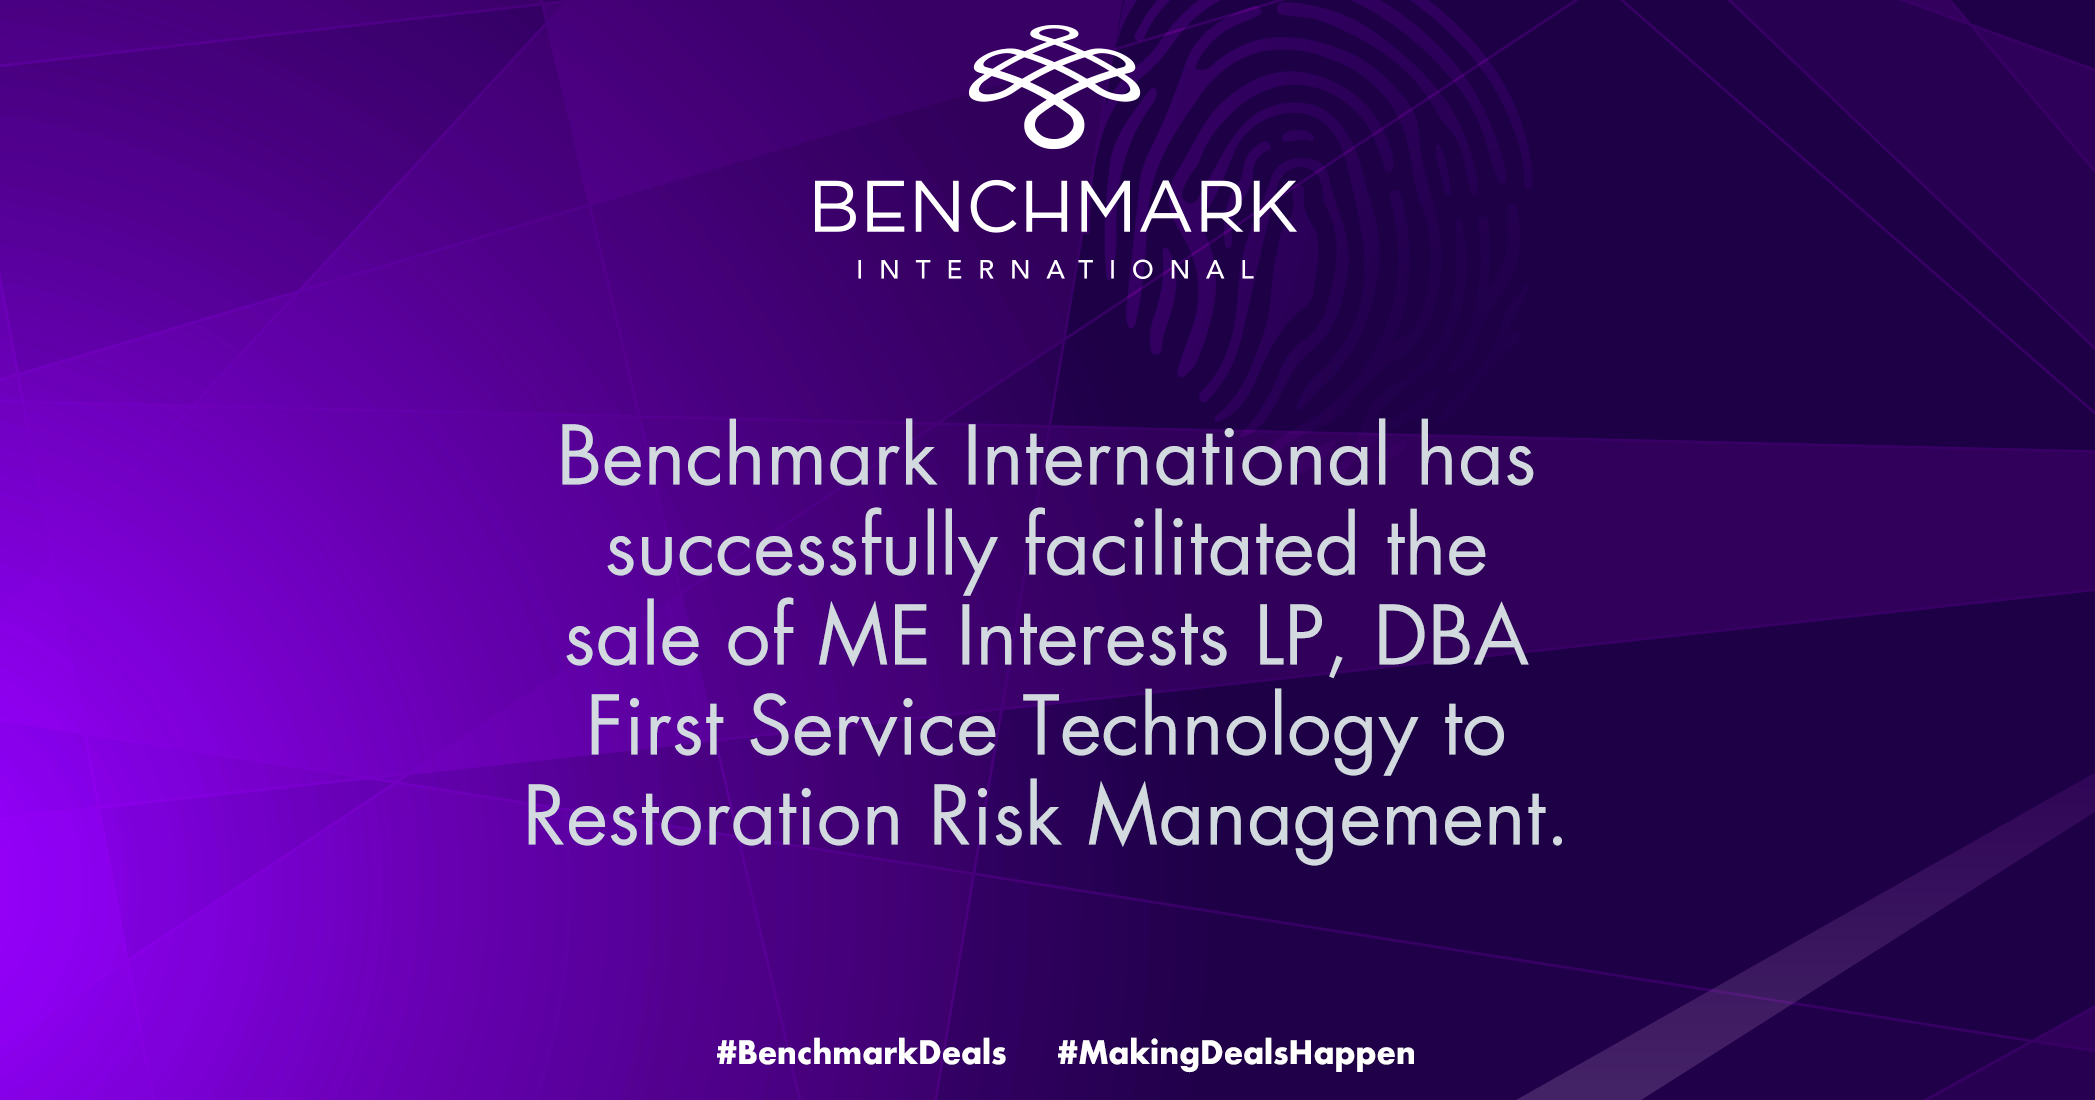 Benchmark International has successfully facilitated the sale of ME Interests LP, DBA First Service Technology to Restoration Risk Management.